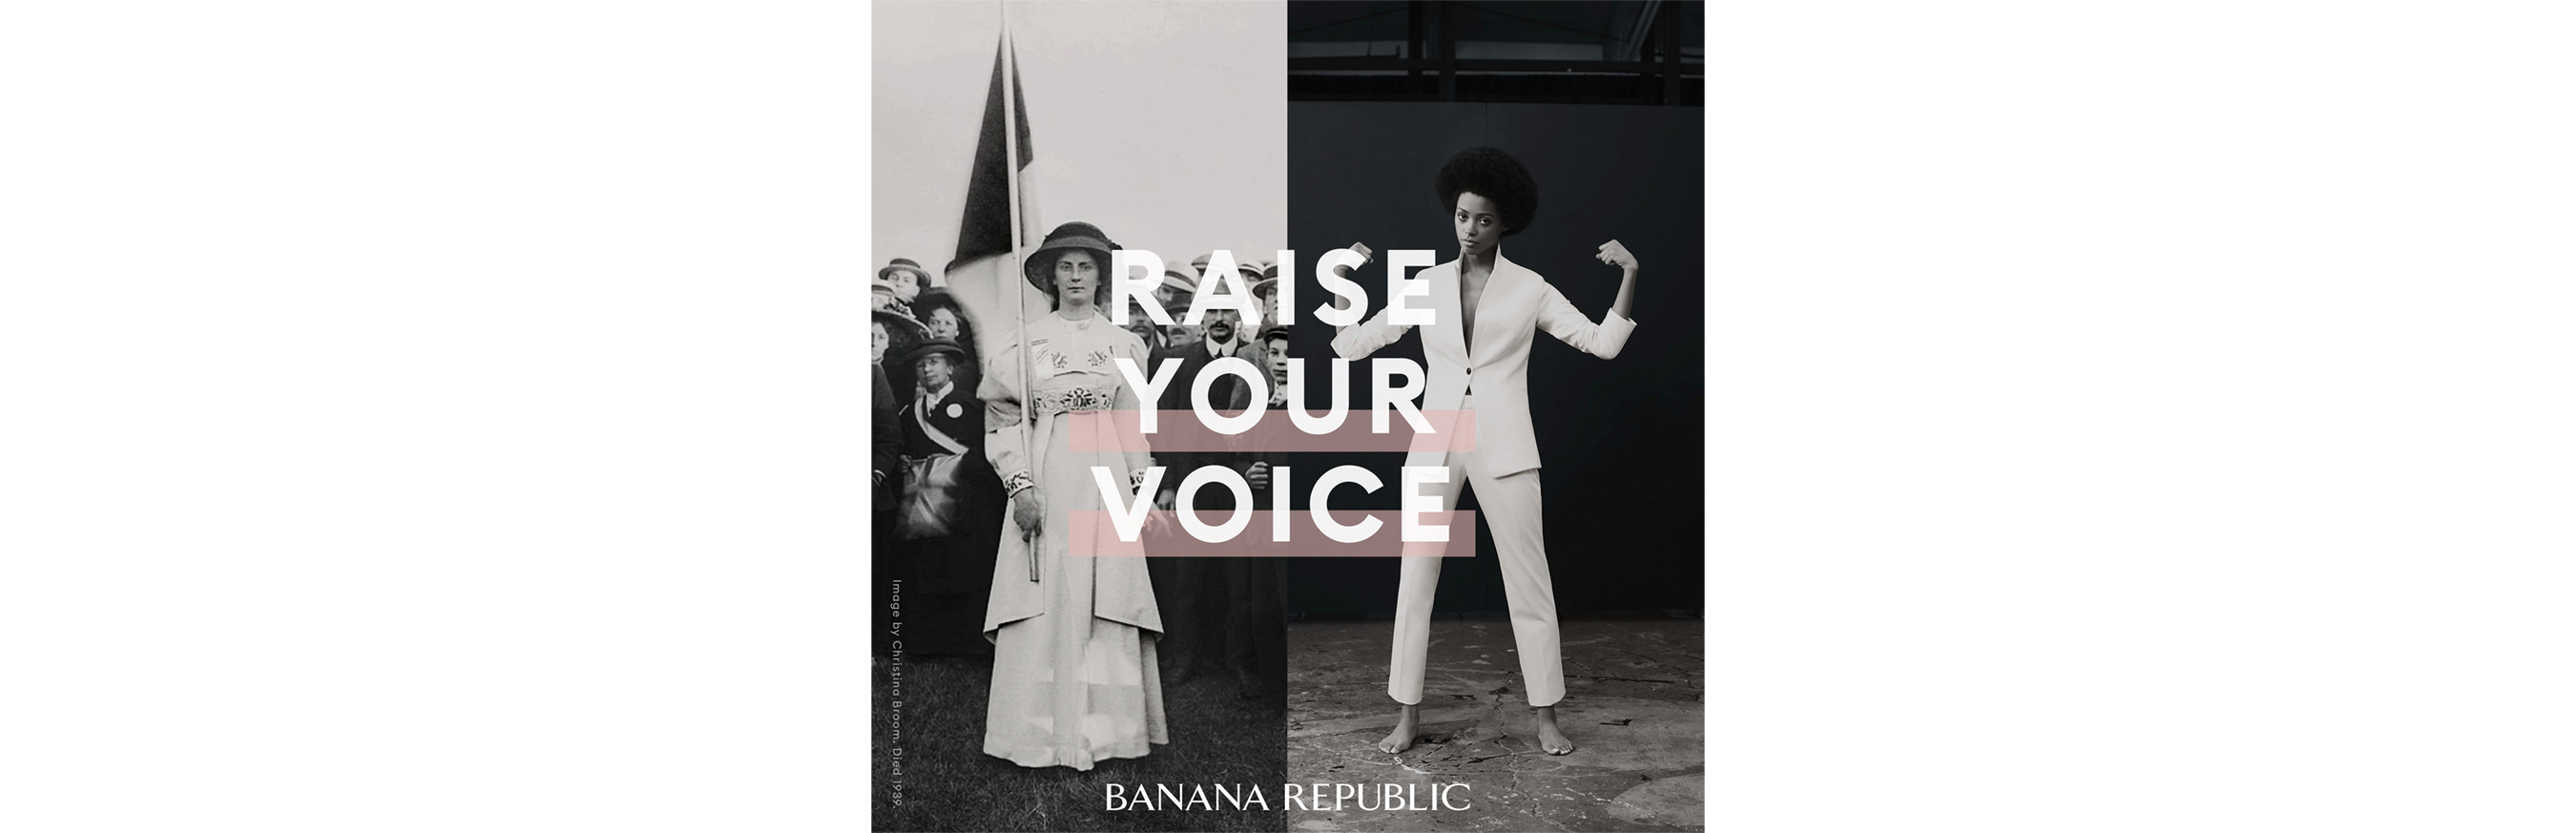 "Black and white photo of women with tagline, ""Raise your voice"""